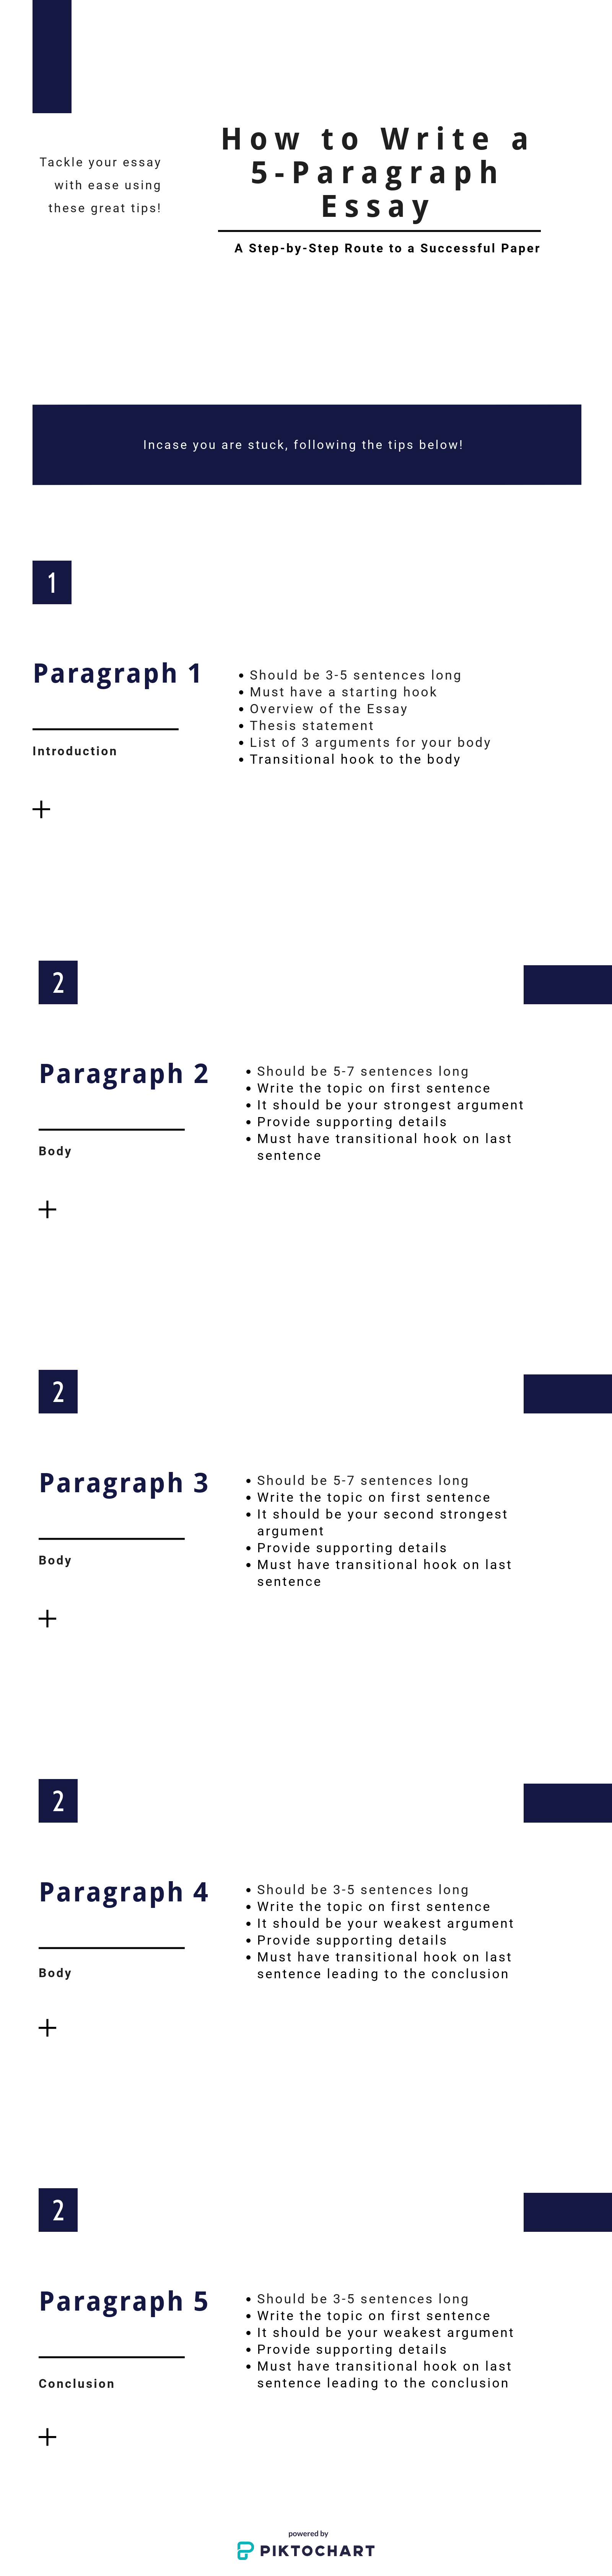 essay best paragraph essay fo documentaries for change with how to  how to write a paragraph essay blog cheapessaynet how to write paragraph essay  high school vs